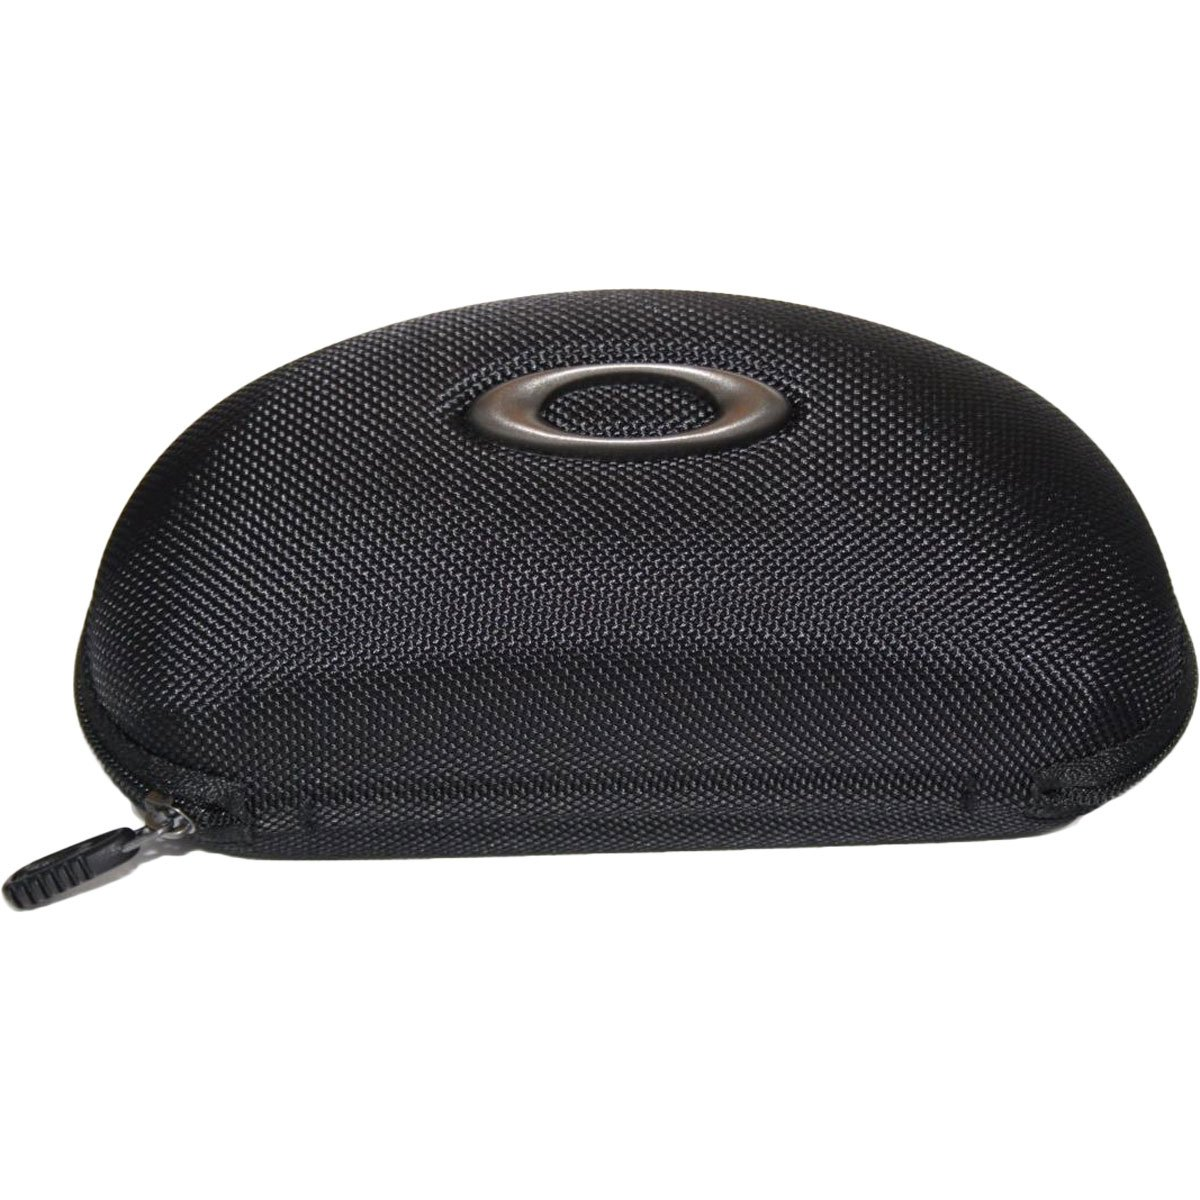 Oakley Sport Soft Vault Case Sunglass Accessories - Black/One Size by Oakley